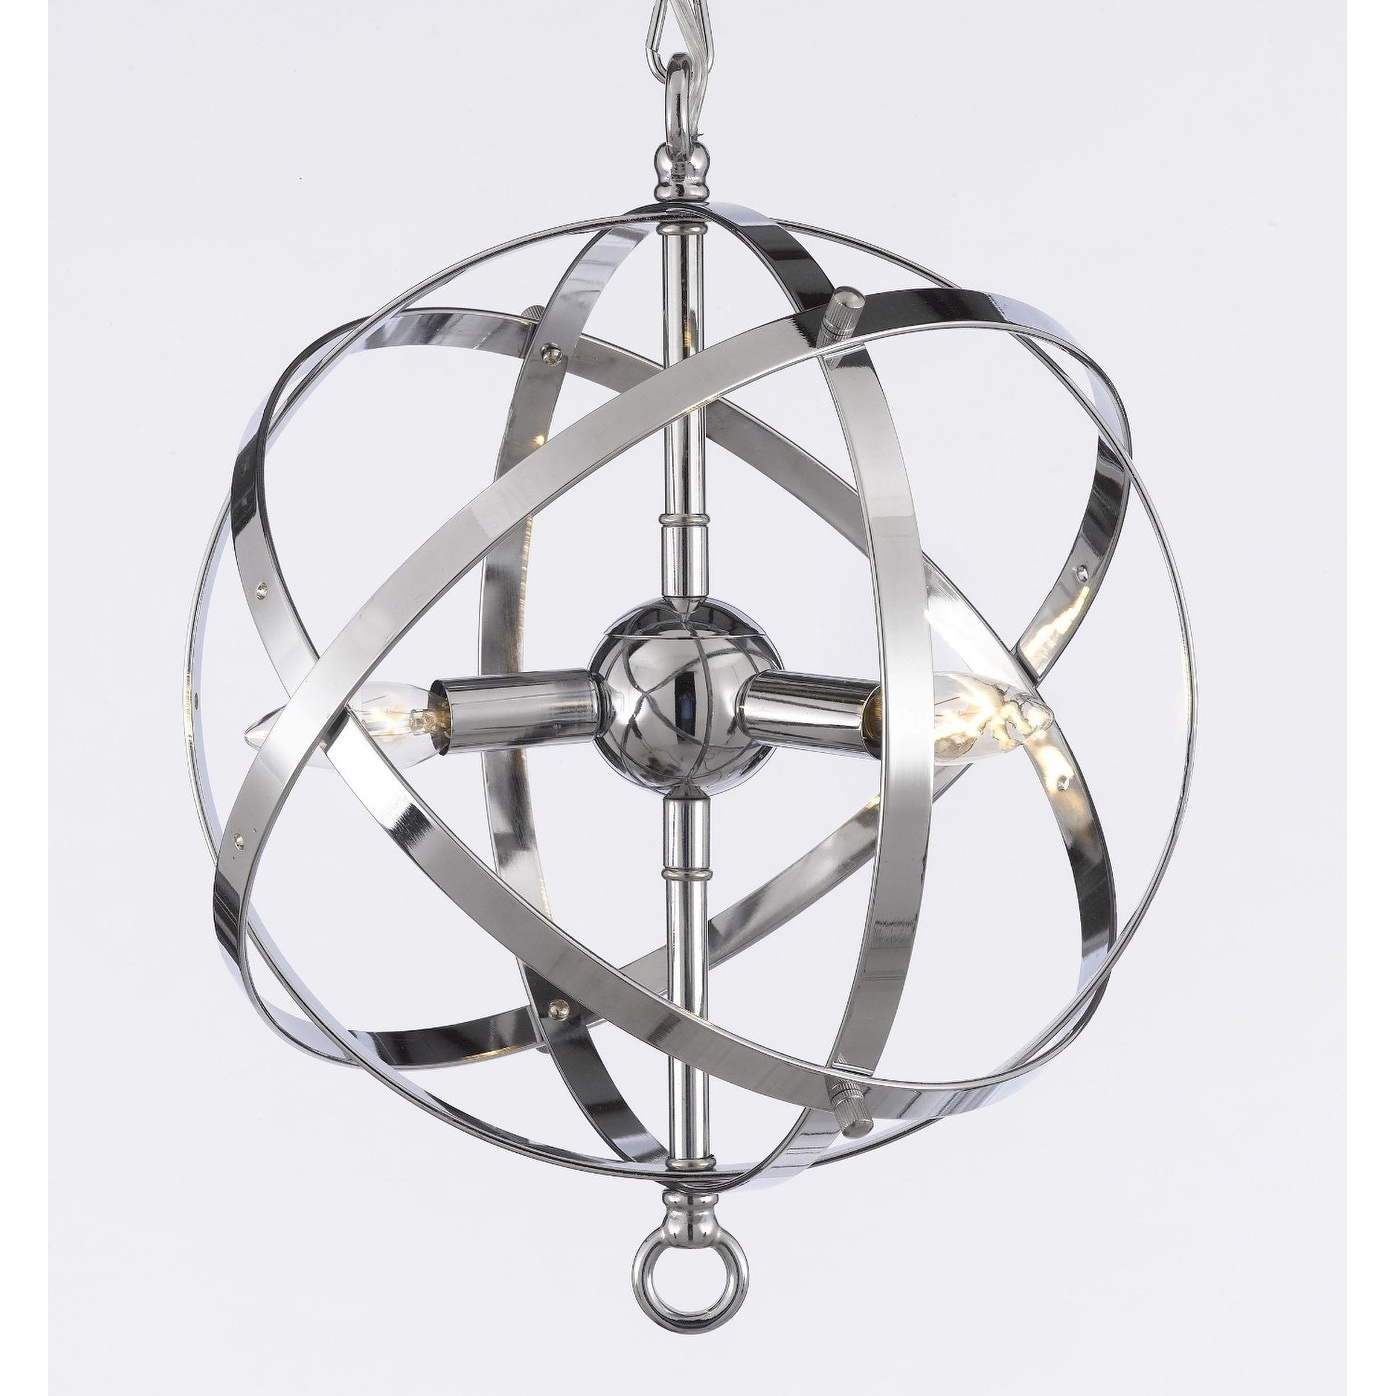 Foucault S Orb Chandelier Lighting Chrome Finish On Free Shipping Today 11525933